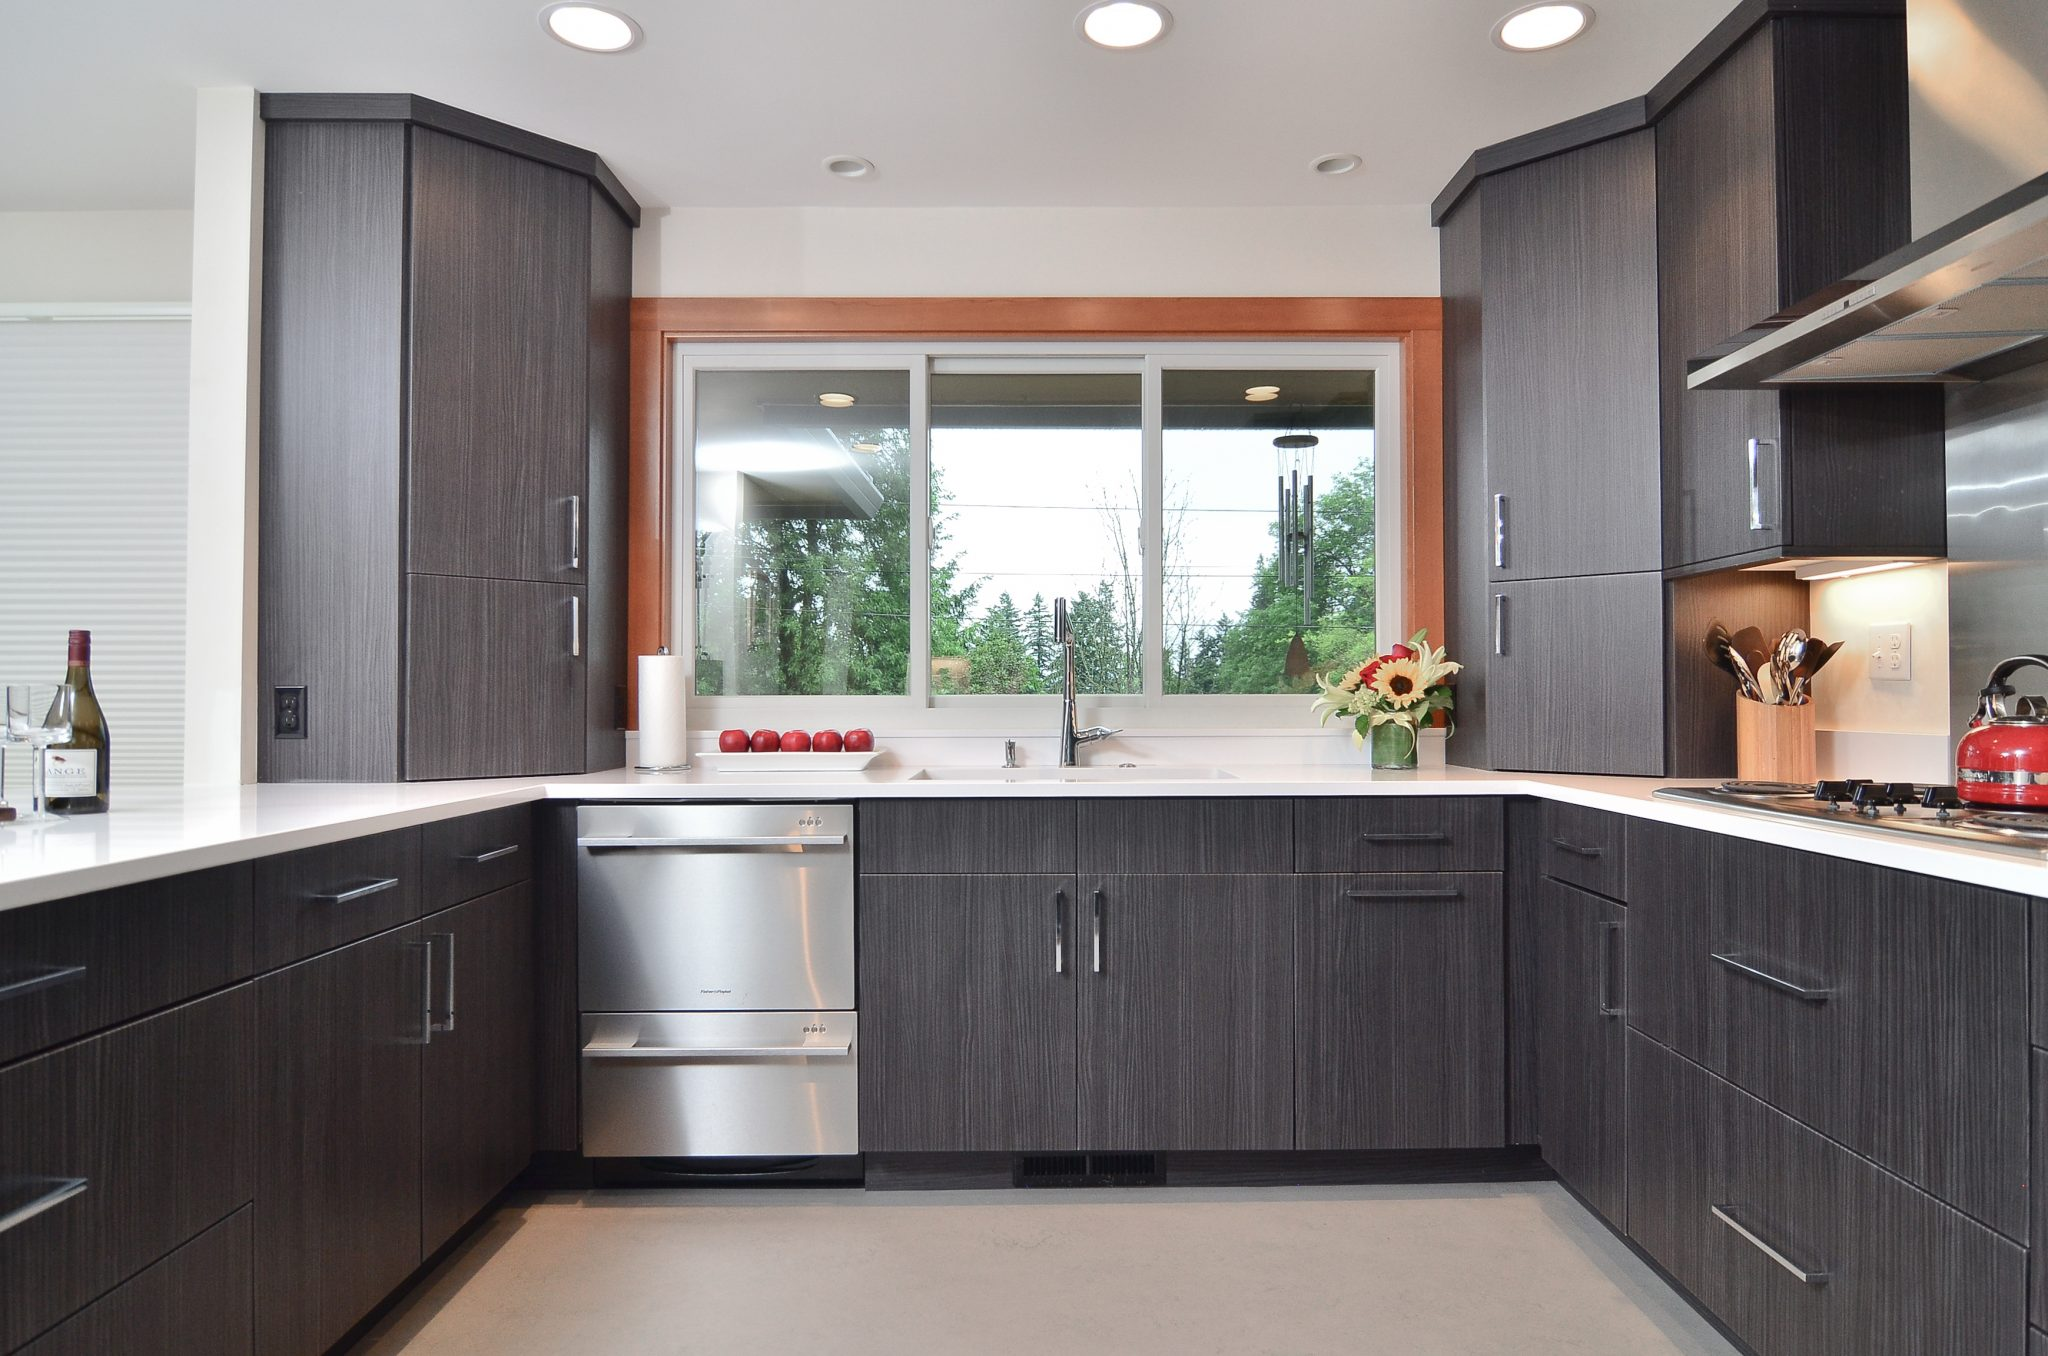 Small Enclosed Kitchen Design Kitchen Layout Design Guide Ovation Design Build Lake Oswego Or